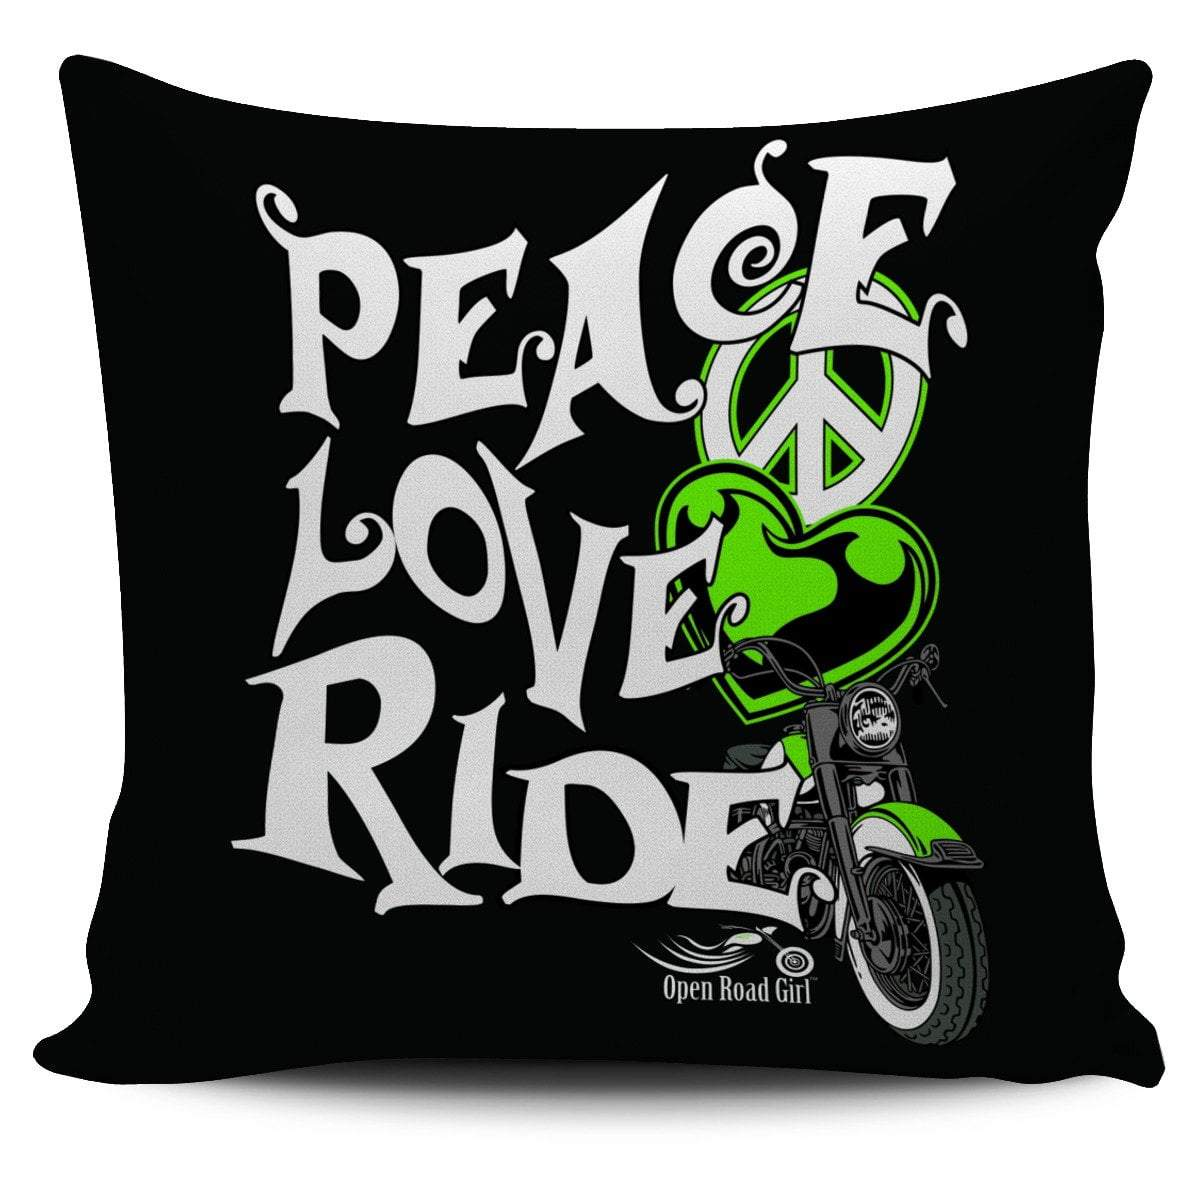 Pacific Pike -  Green Peace Love Ride Pillow Cover  -  Green Peace Love Ride Pillow Cover  -  Bedding Set